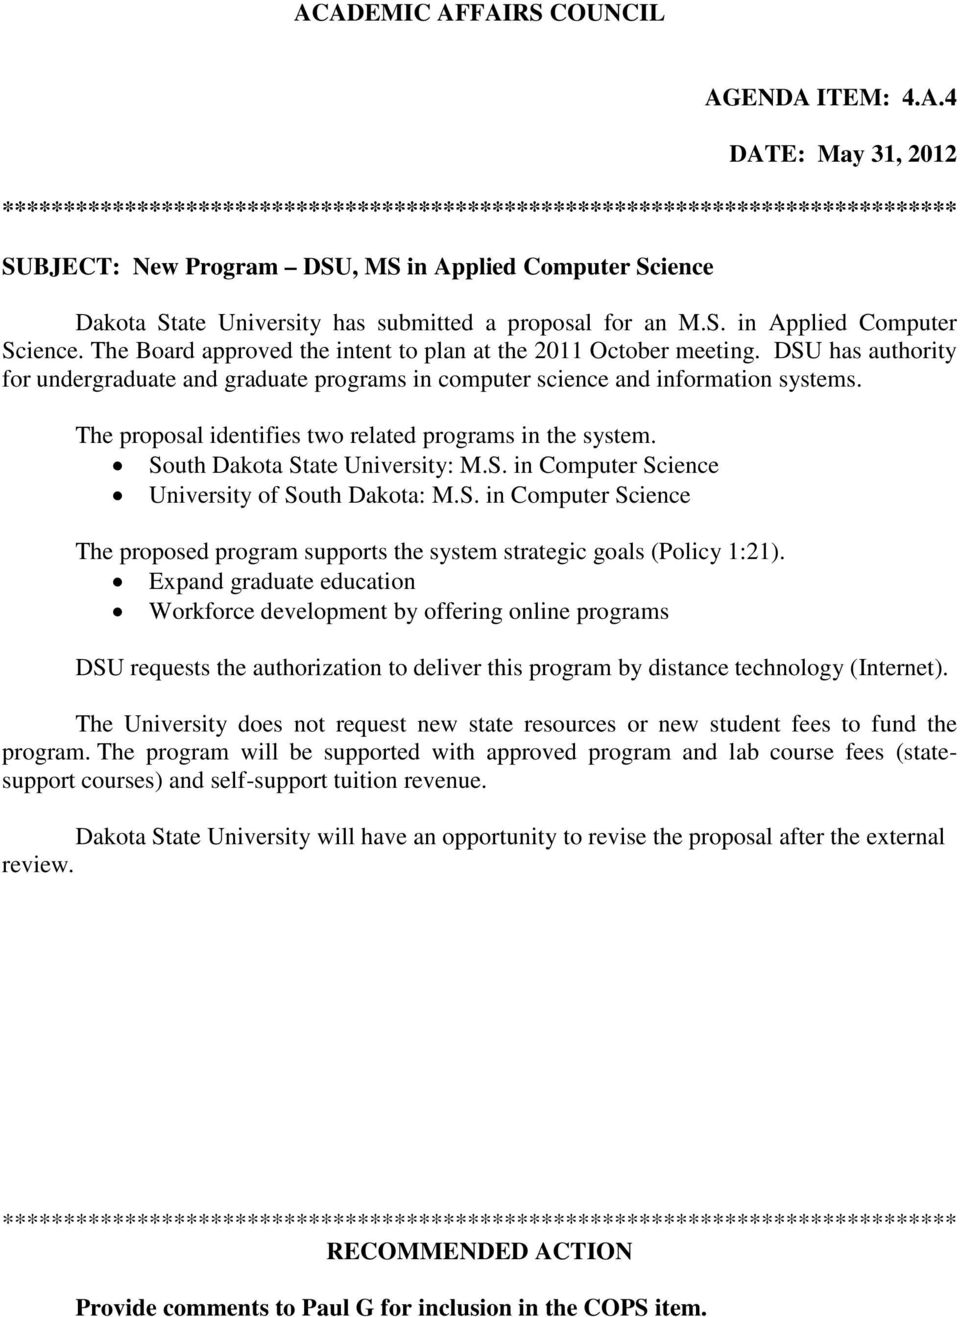 DSU has authority for undergraduate and graduate programs in computer science and information systems. The proposal identifies two related programs in the system. South Dakota State University: M.S. in Computer Science University of South Dakota: M.